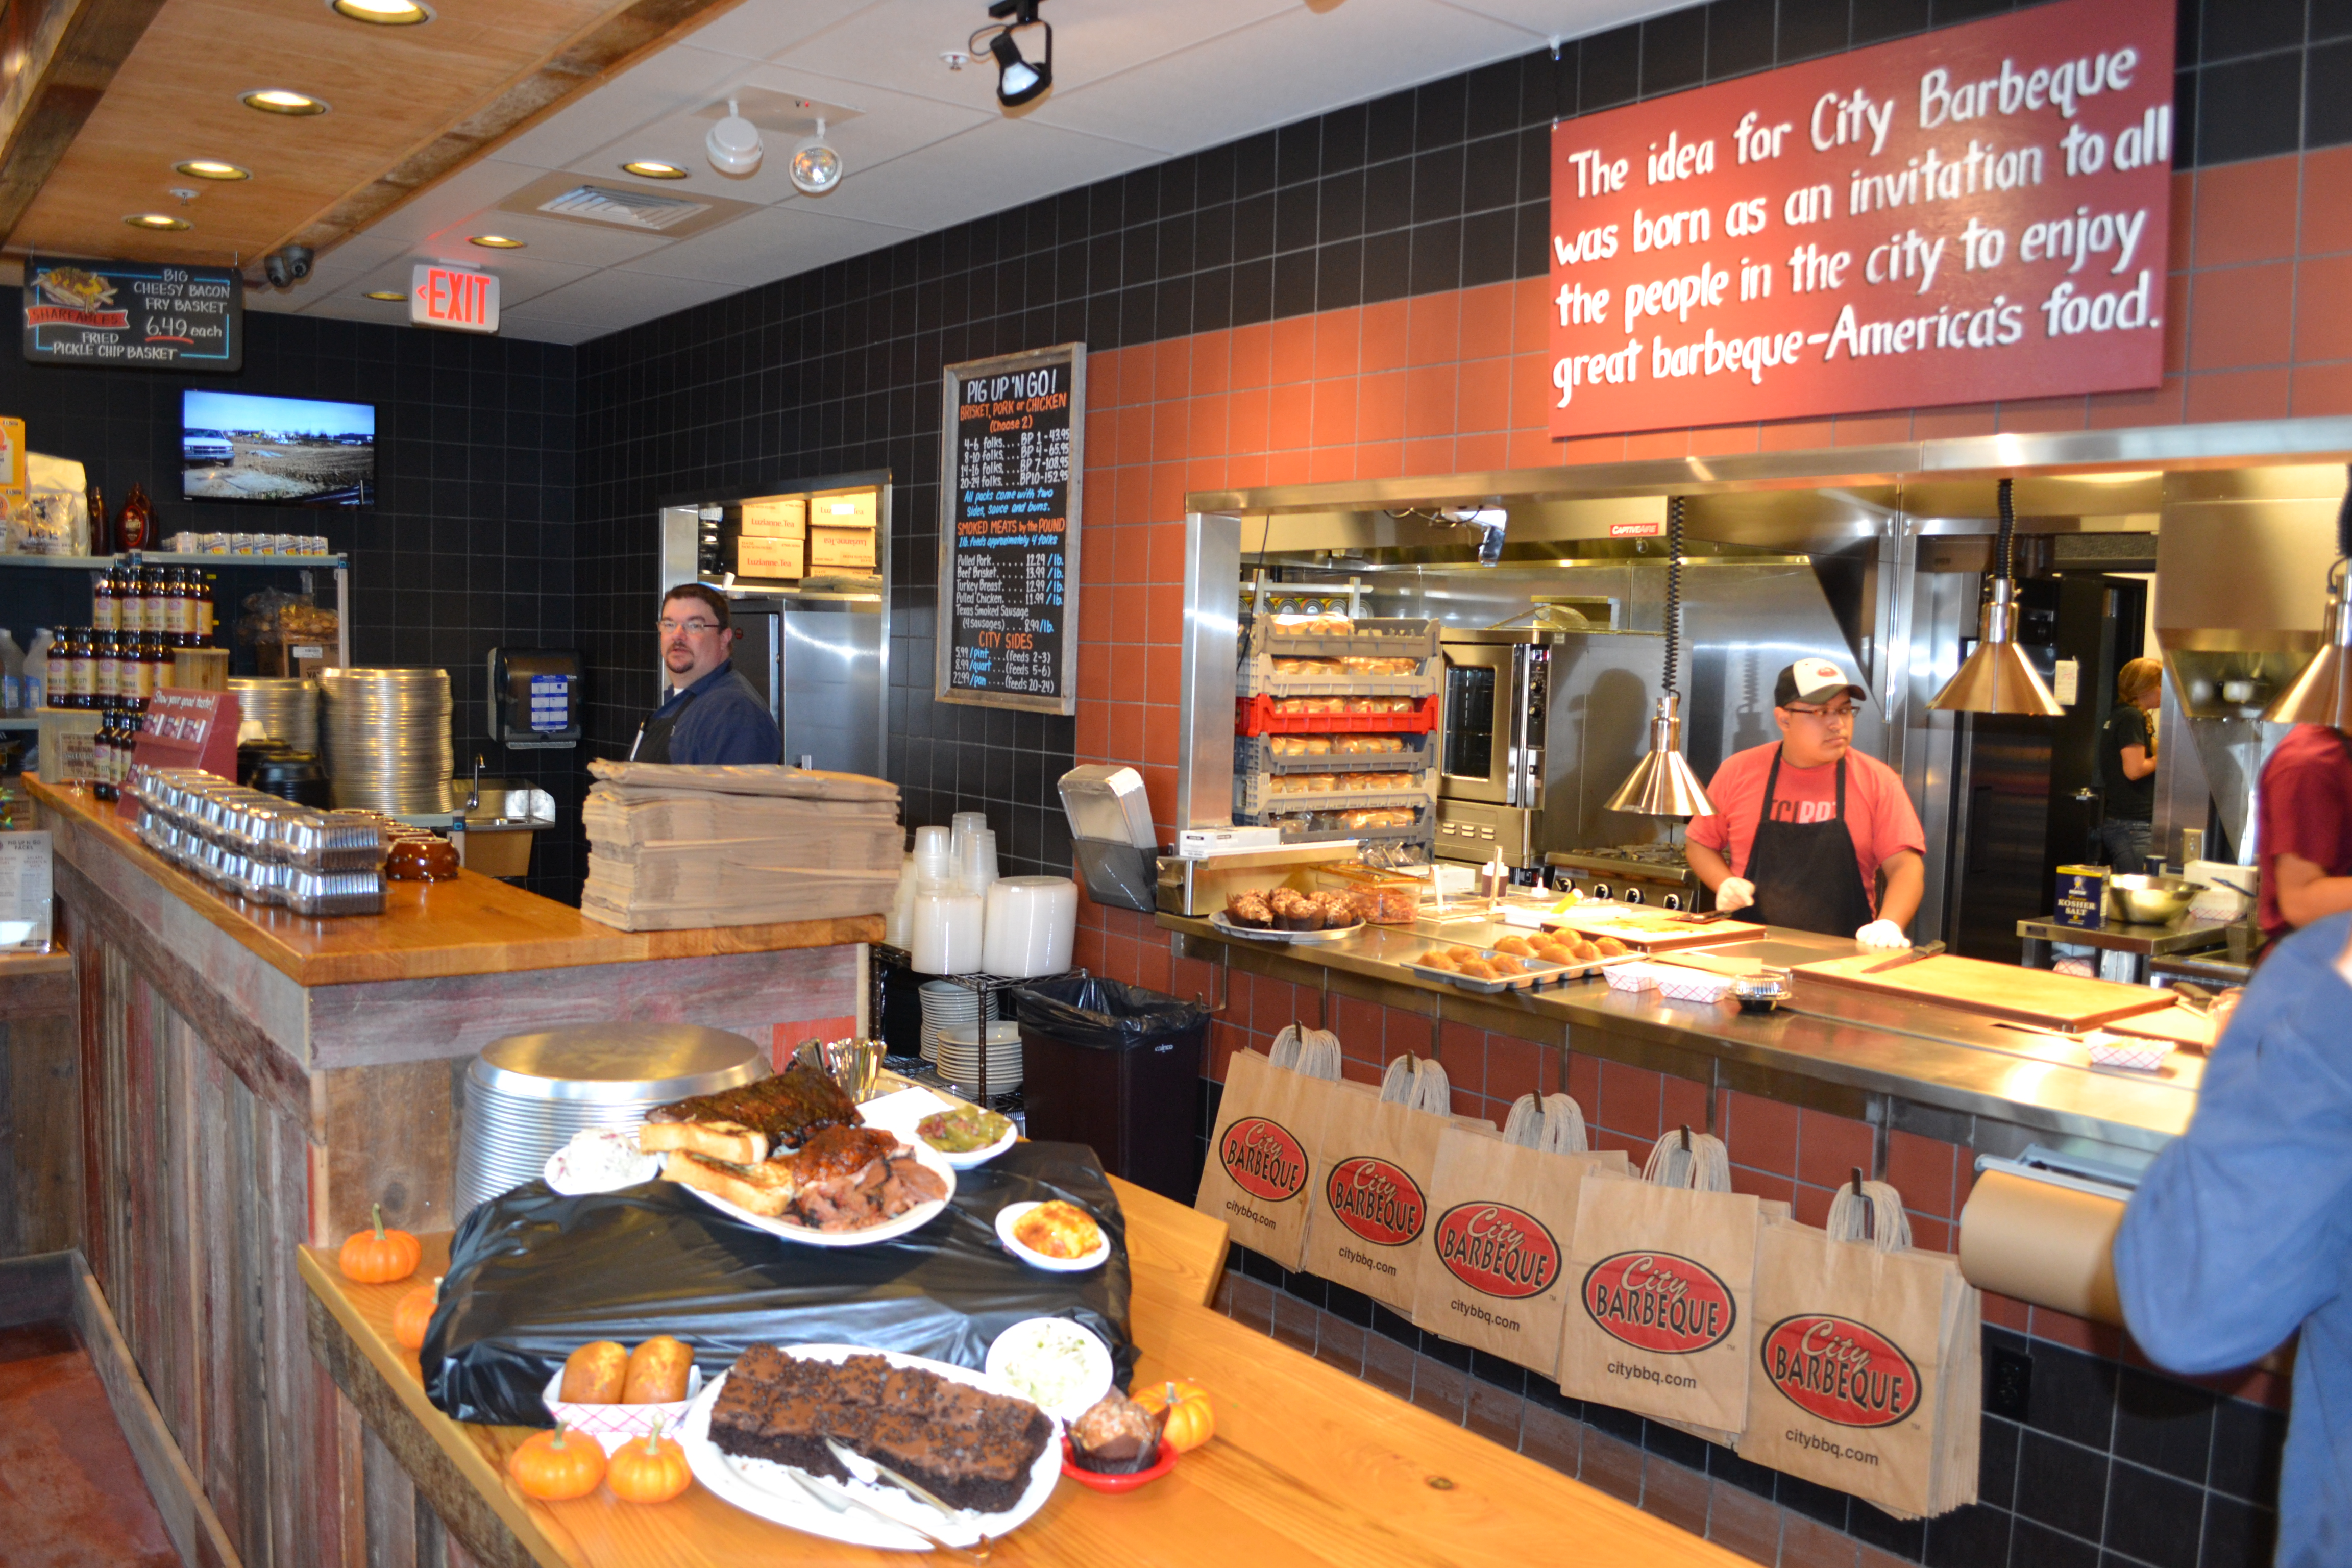 City Barbeque is now open in Fishers Marketplace. It is one of seven new restaurants opening in the center at 131st Street and Ind. 37. (Photo by John Cinnamon)